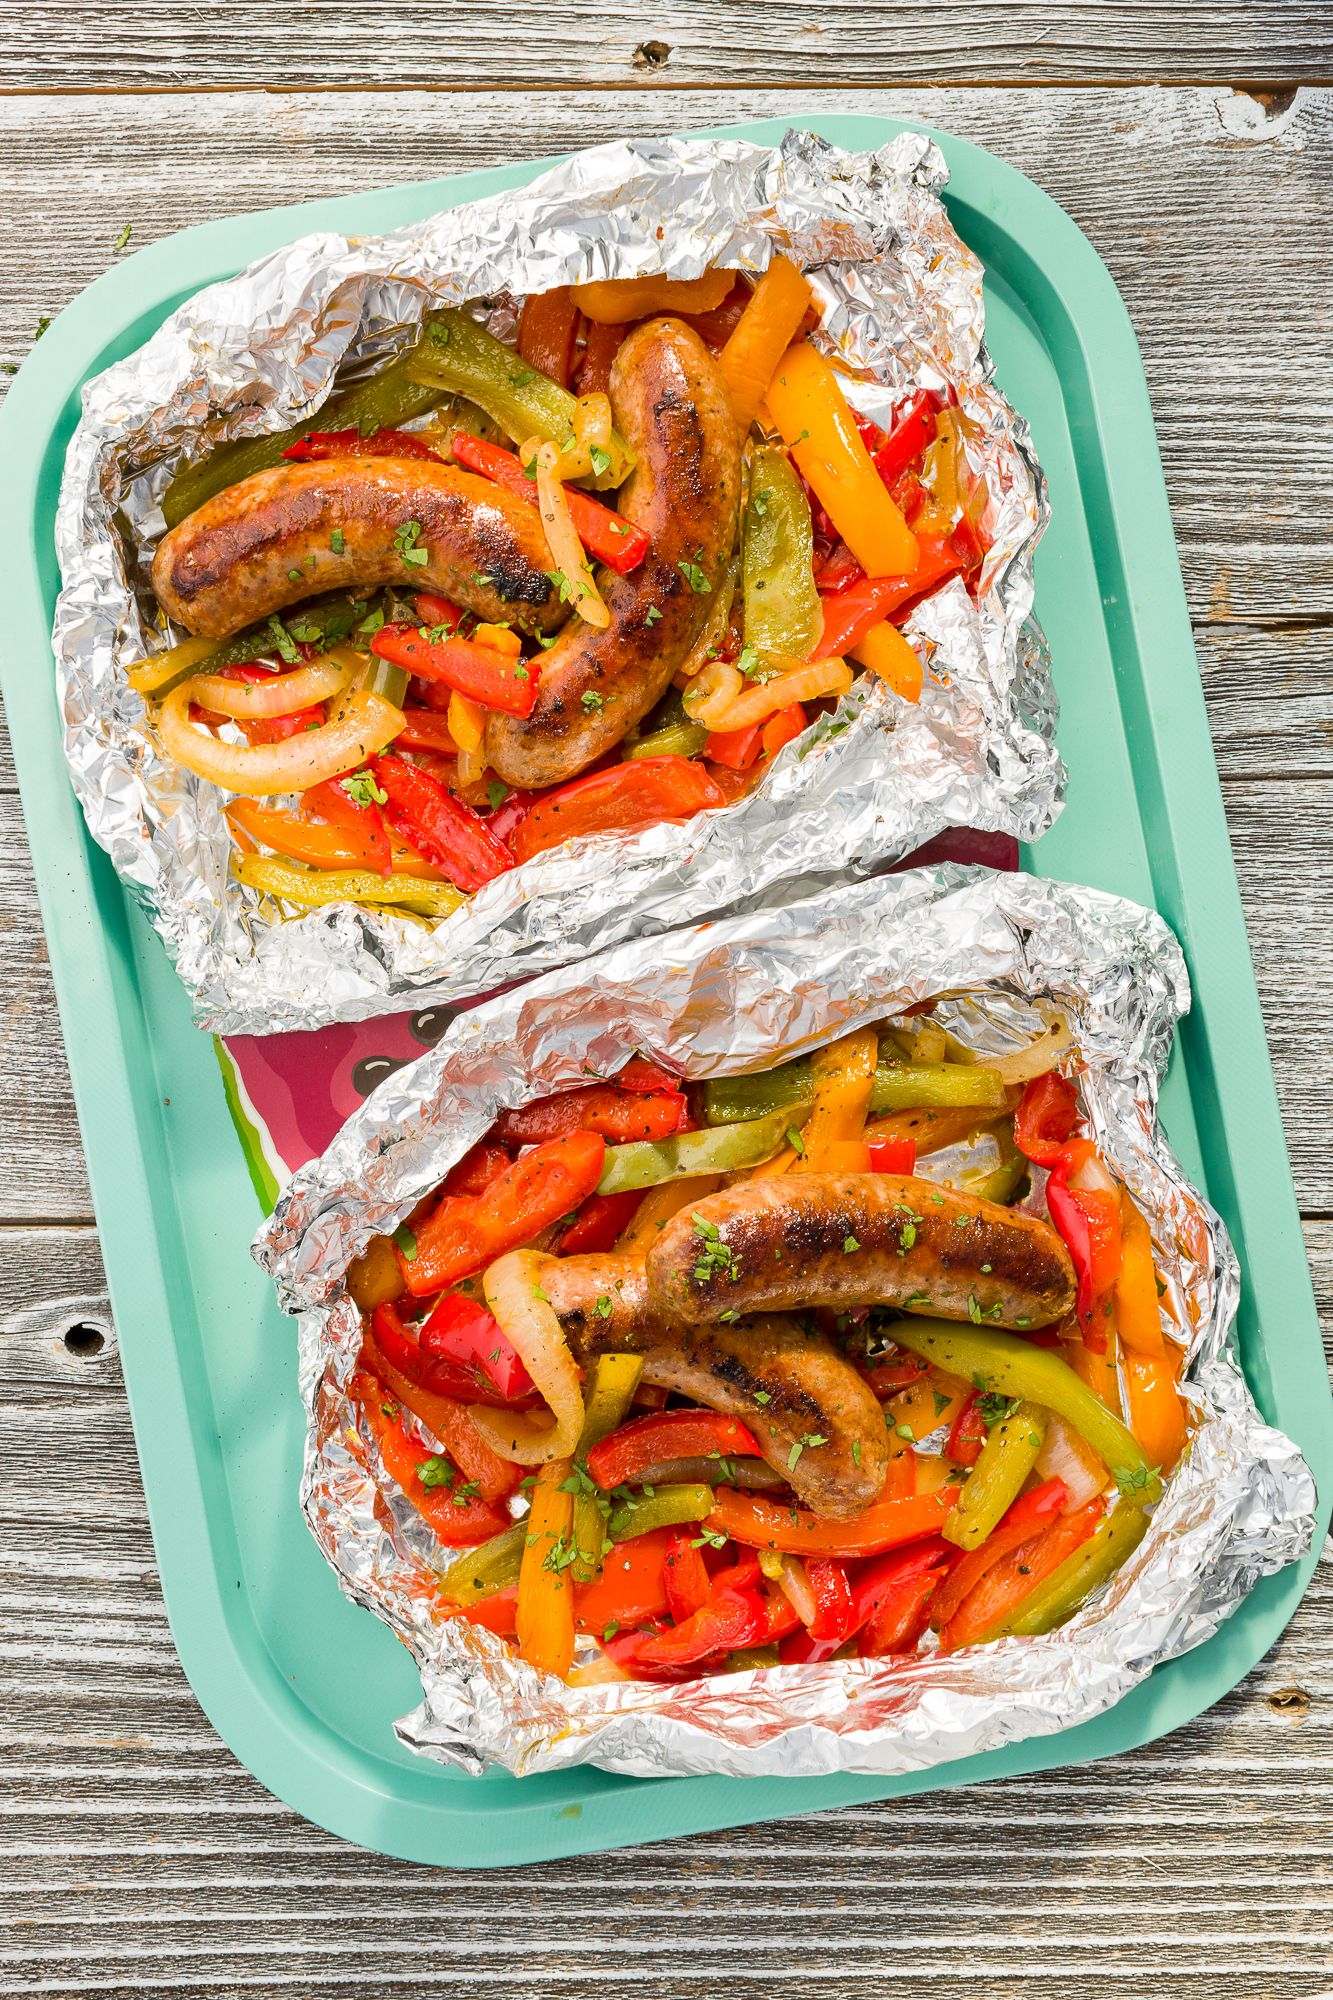 70+ Best Grilling Ideas & Recipes – Things To Cook on the Grill